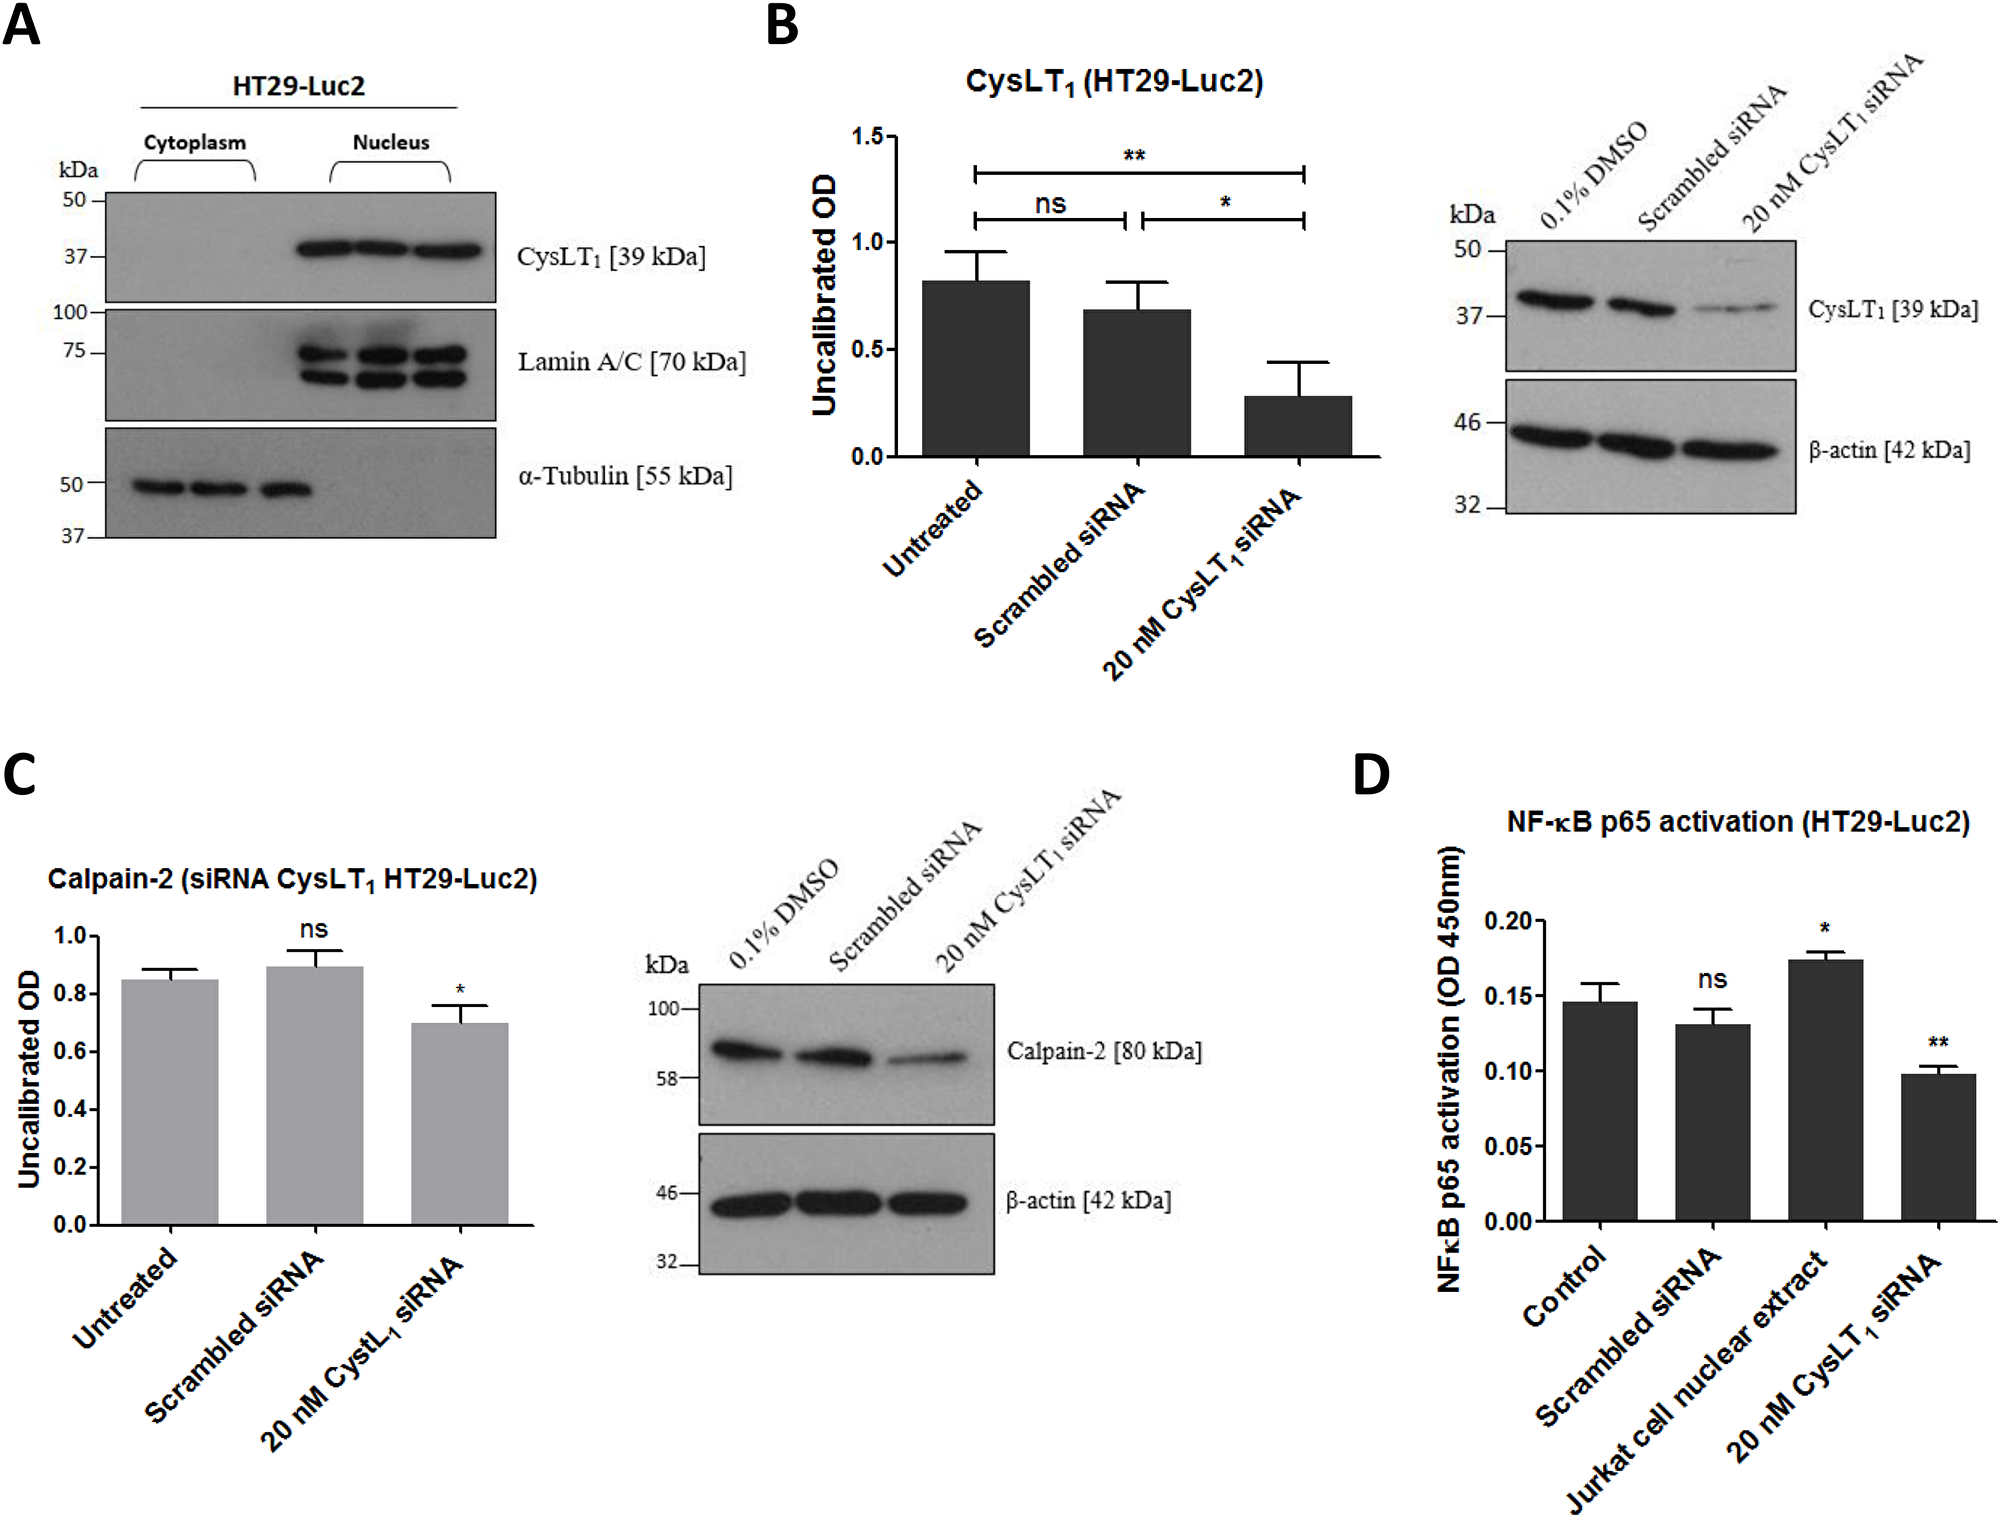 Effects of CysLT1 gene silencing in HT29-Luc2 cells.